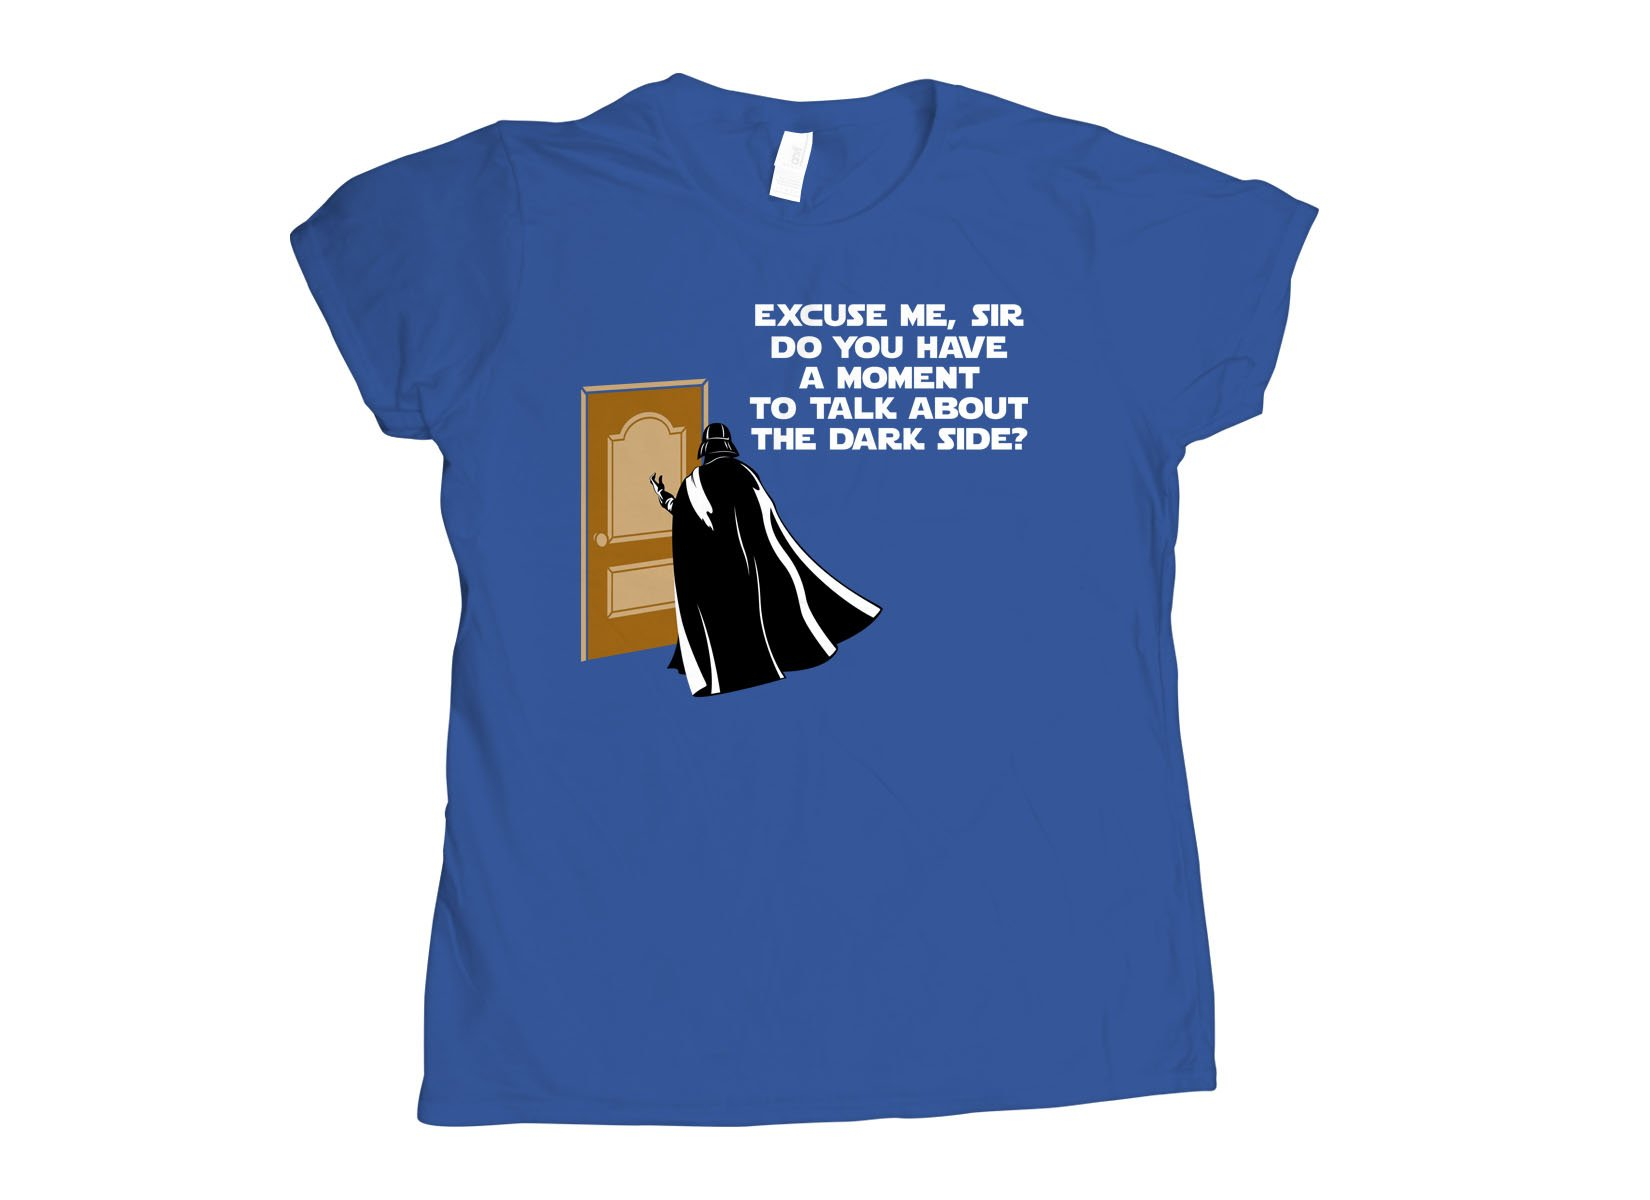 A Moment To Talk About The Dark Side on Womens T-Shirt